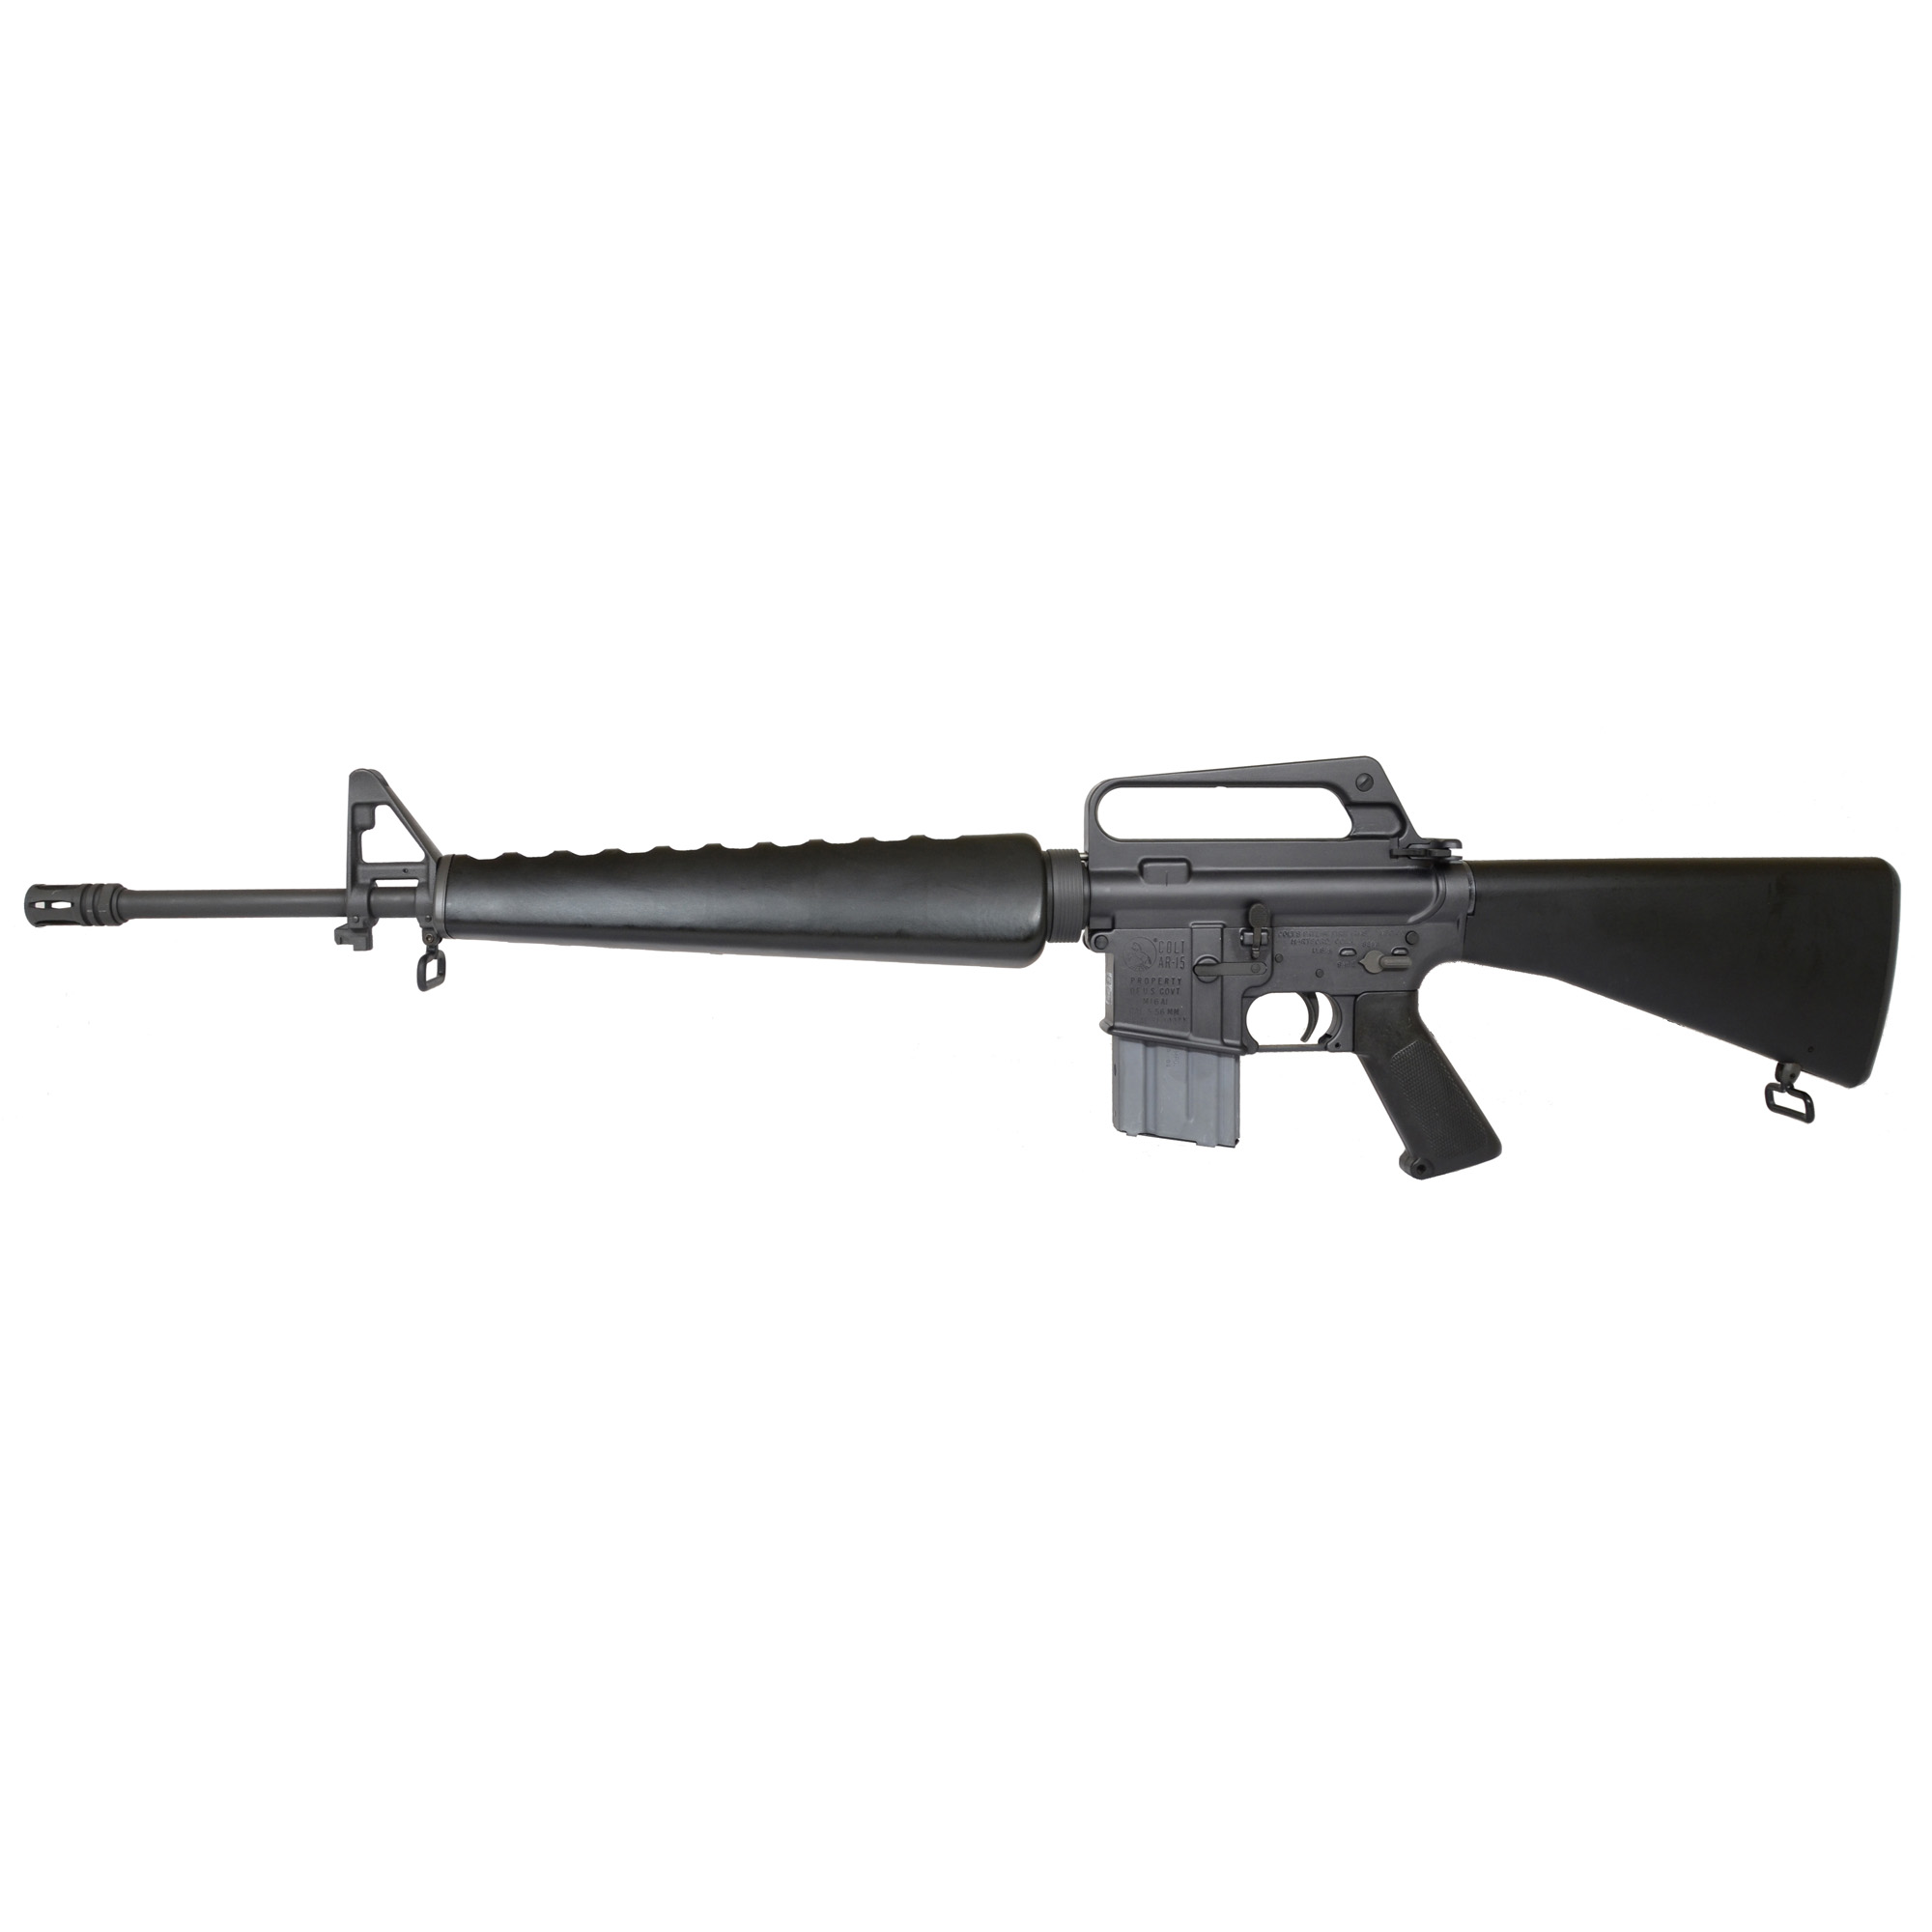 "The Colt M16A1 Retro Reissue features a 20"" barrel"" 20 round magazine"" fixed stock"" matte black finish and fixed carry handle."